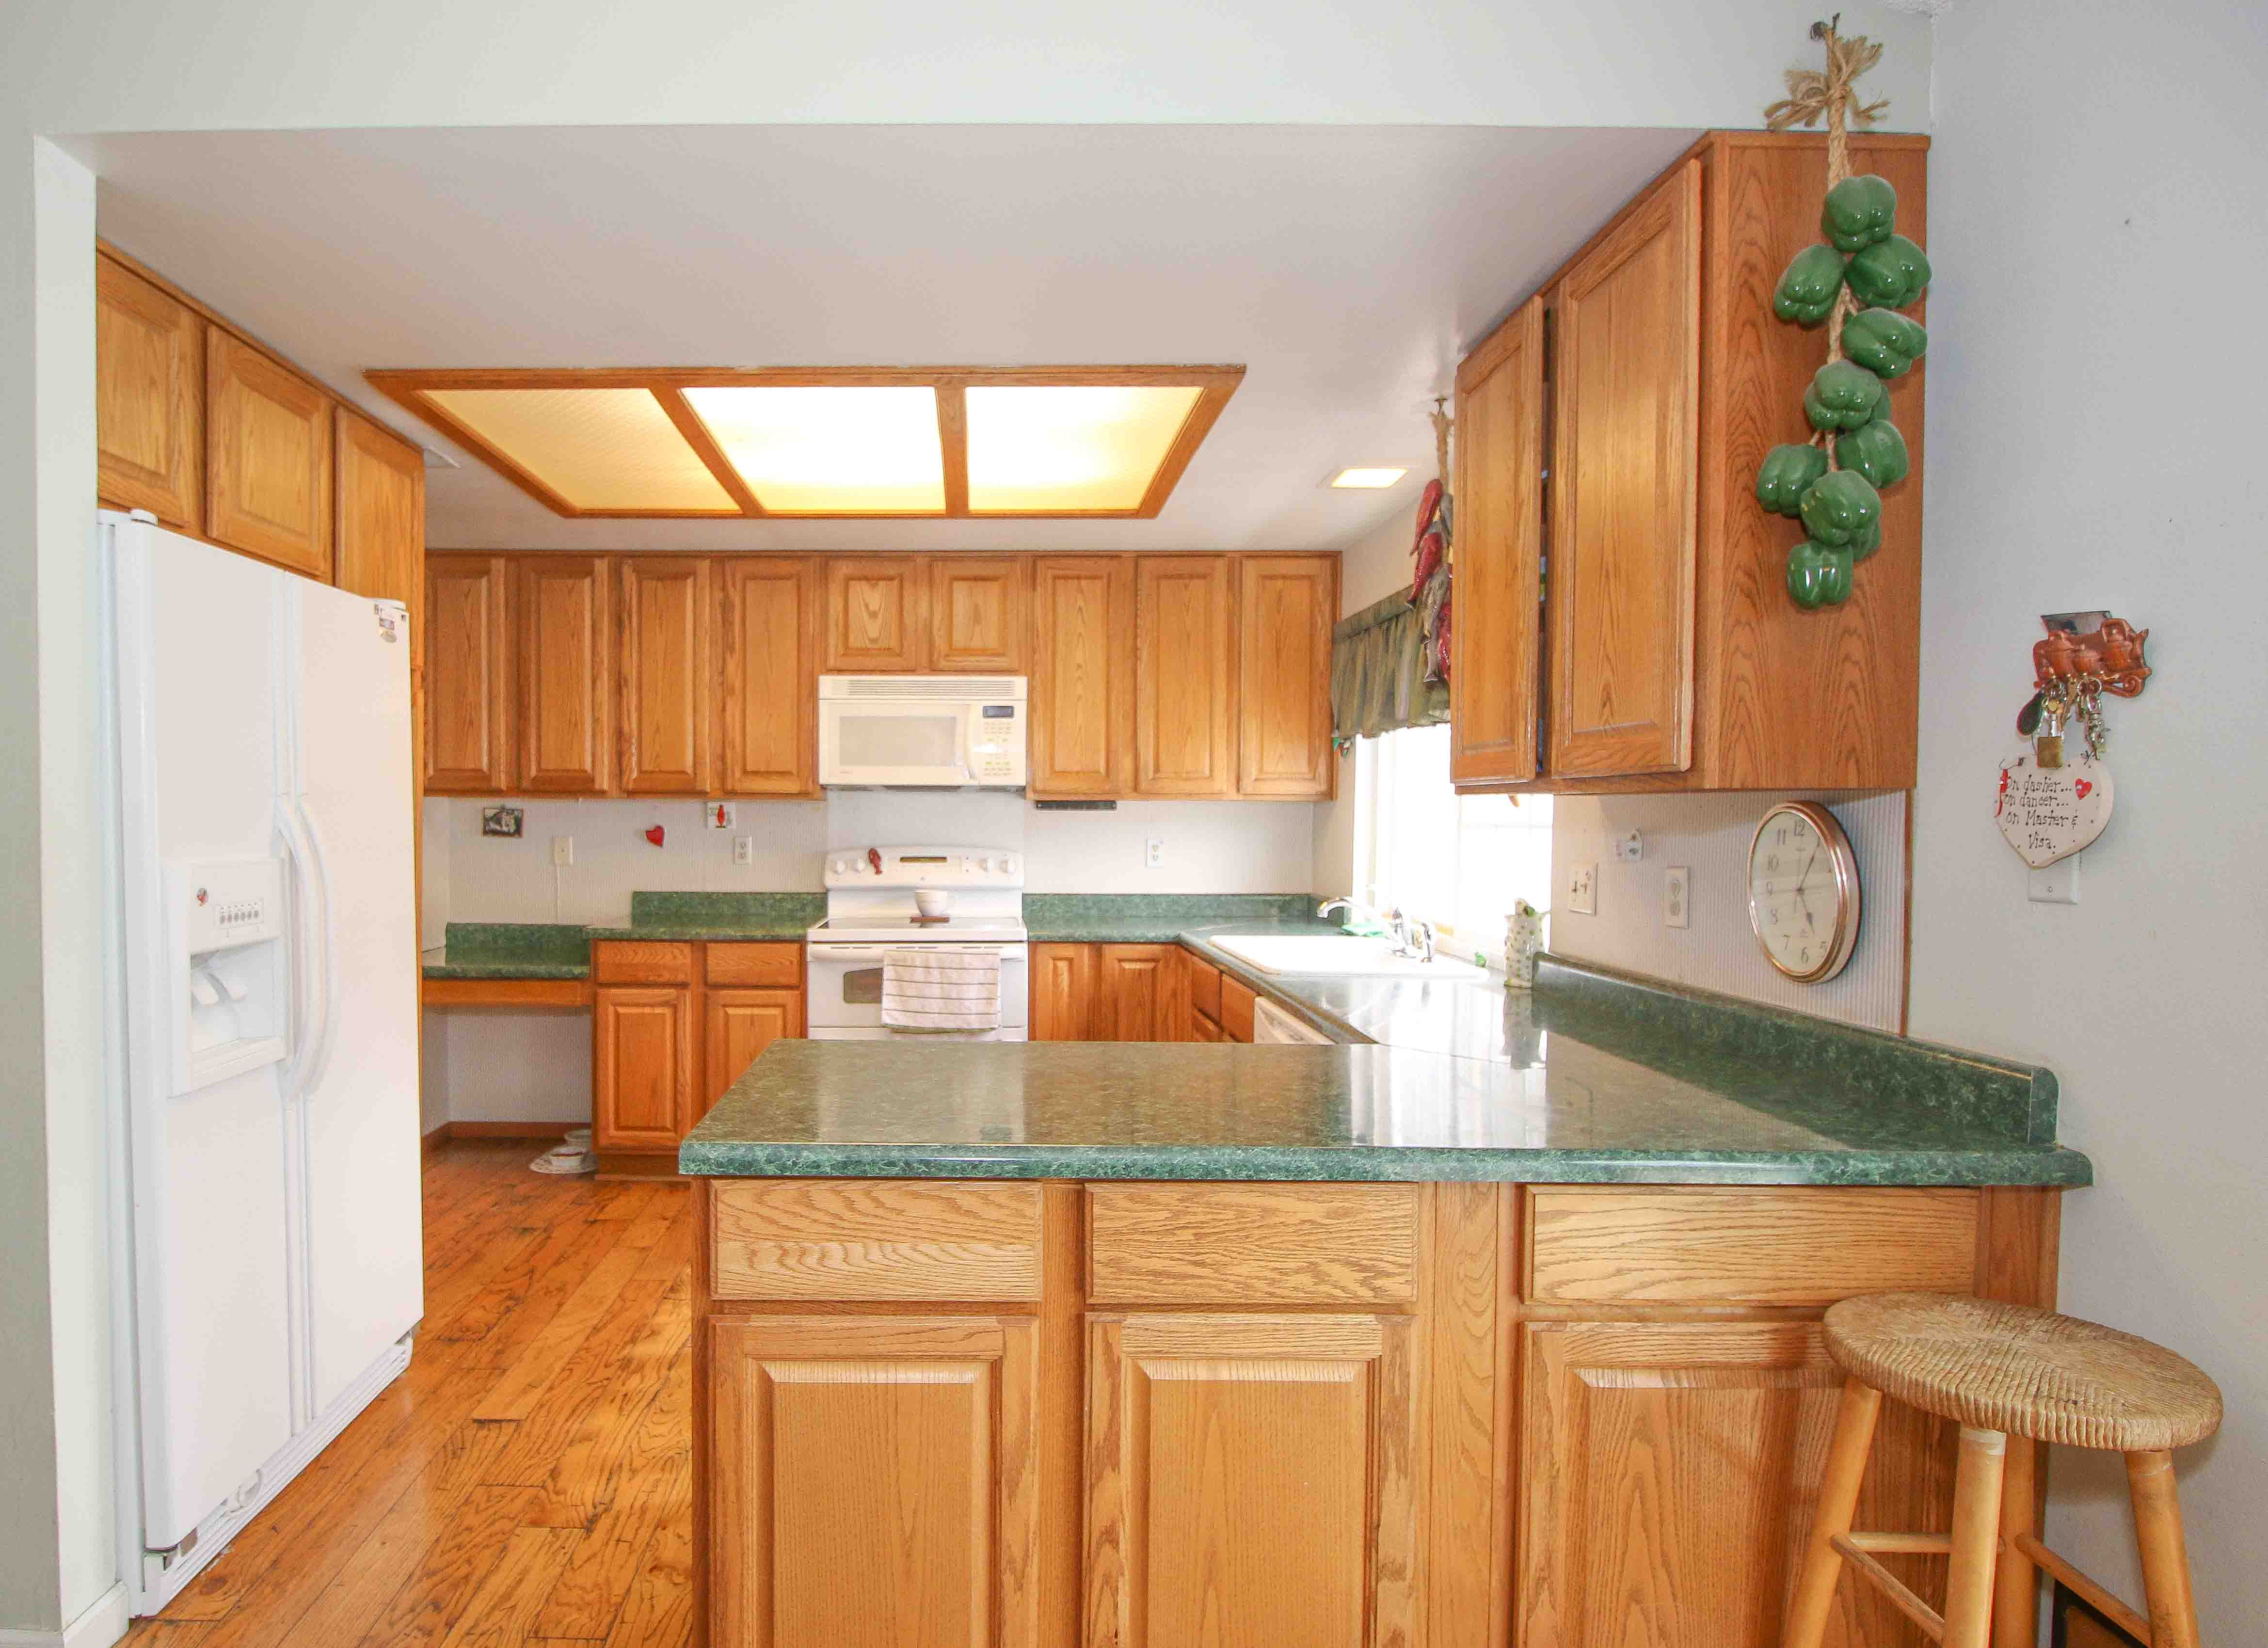 Single story 3 bedroom las vegas home with pool traditional wood burning fireplace upgraded guest bathroom low maintenance landscaping ceiling fans throughout no hoa and all appliances included aloadofball Image collections